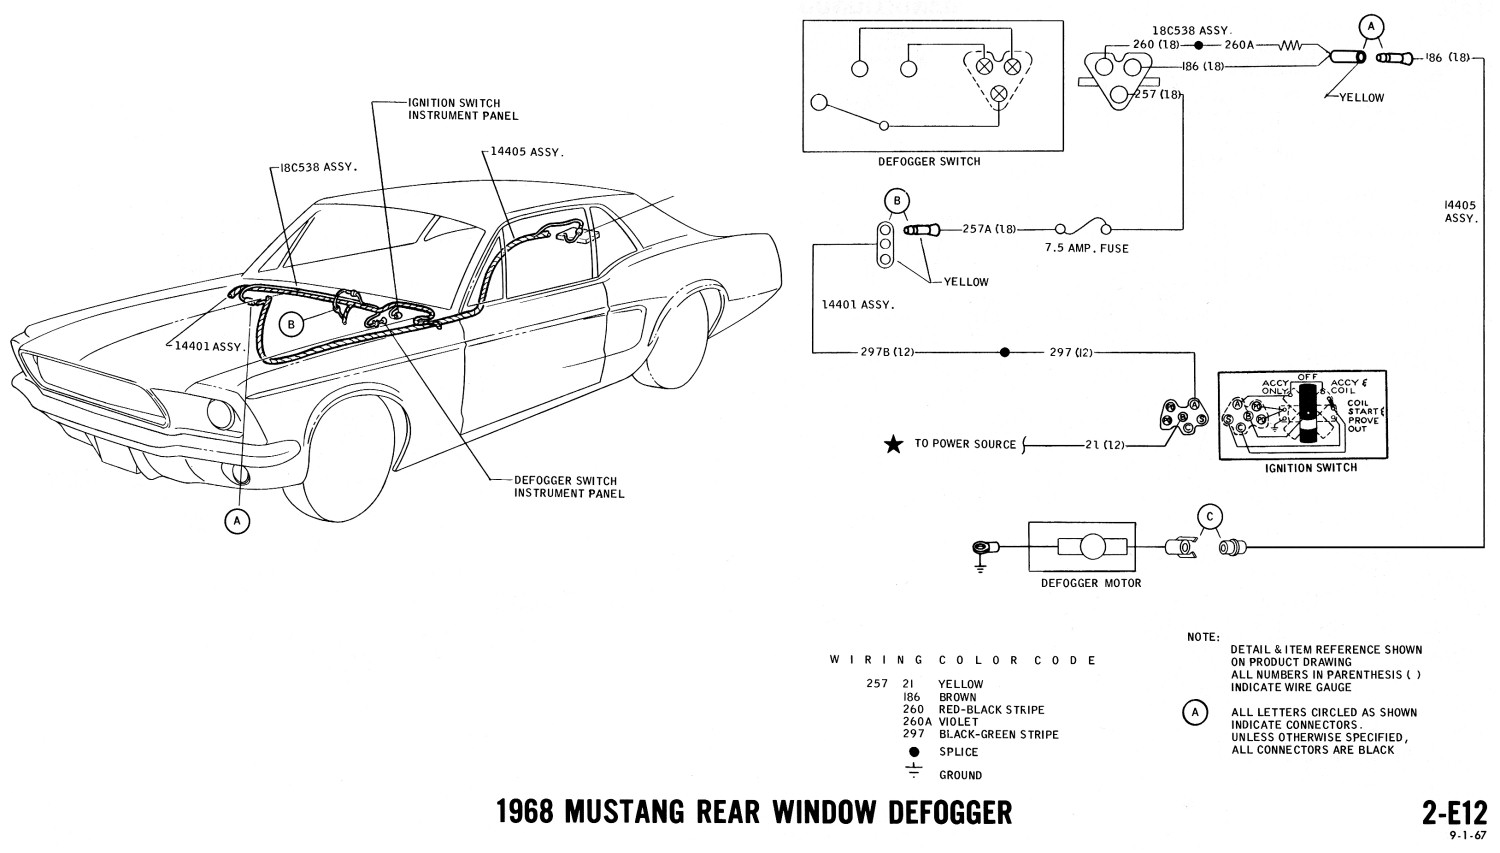 1979 Corvette Rear Window Defogger Wiring Diagram Search For 1968 Starter Mustang Diagrams And Vacuum Schematics Average Joe Rh Averagejoerestoration Com Radio